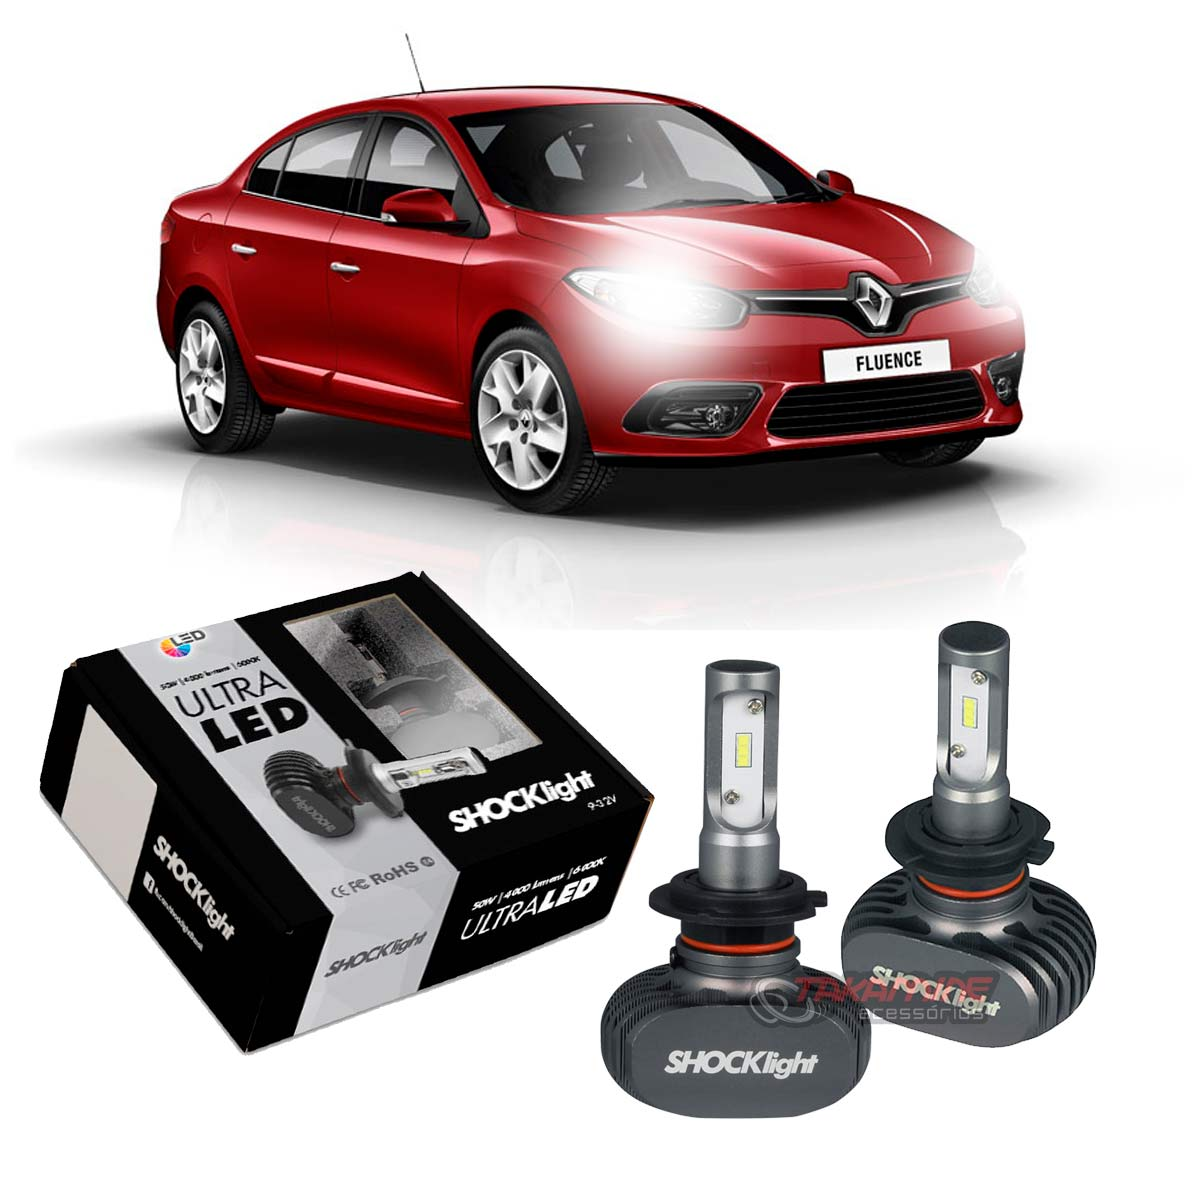 Kit Ultra LED Fluence 2011 2012 2013 2014 2015 2016 2017 tipo xenon farol baixo H7 50W